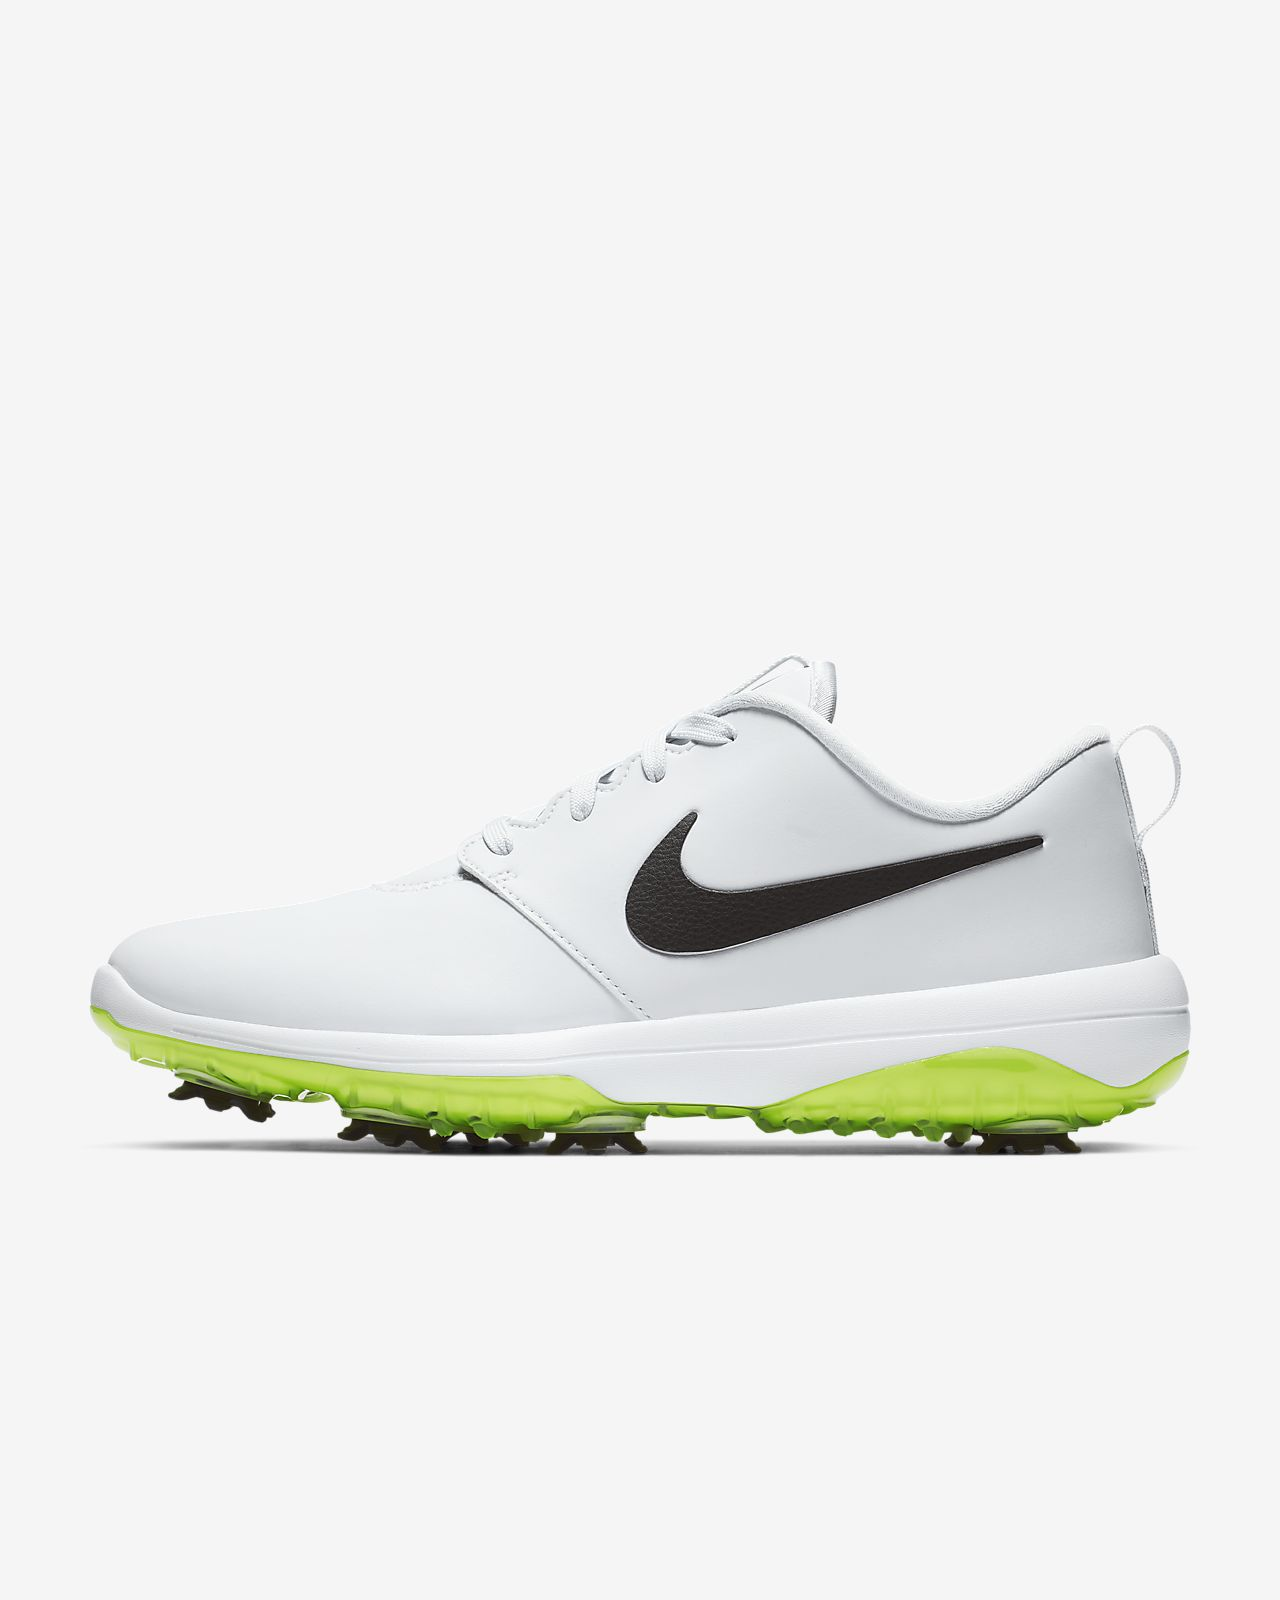 546a0849ebb6 Nike Roshe G Tour Men s Golf Shoe. Nike.com